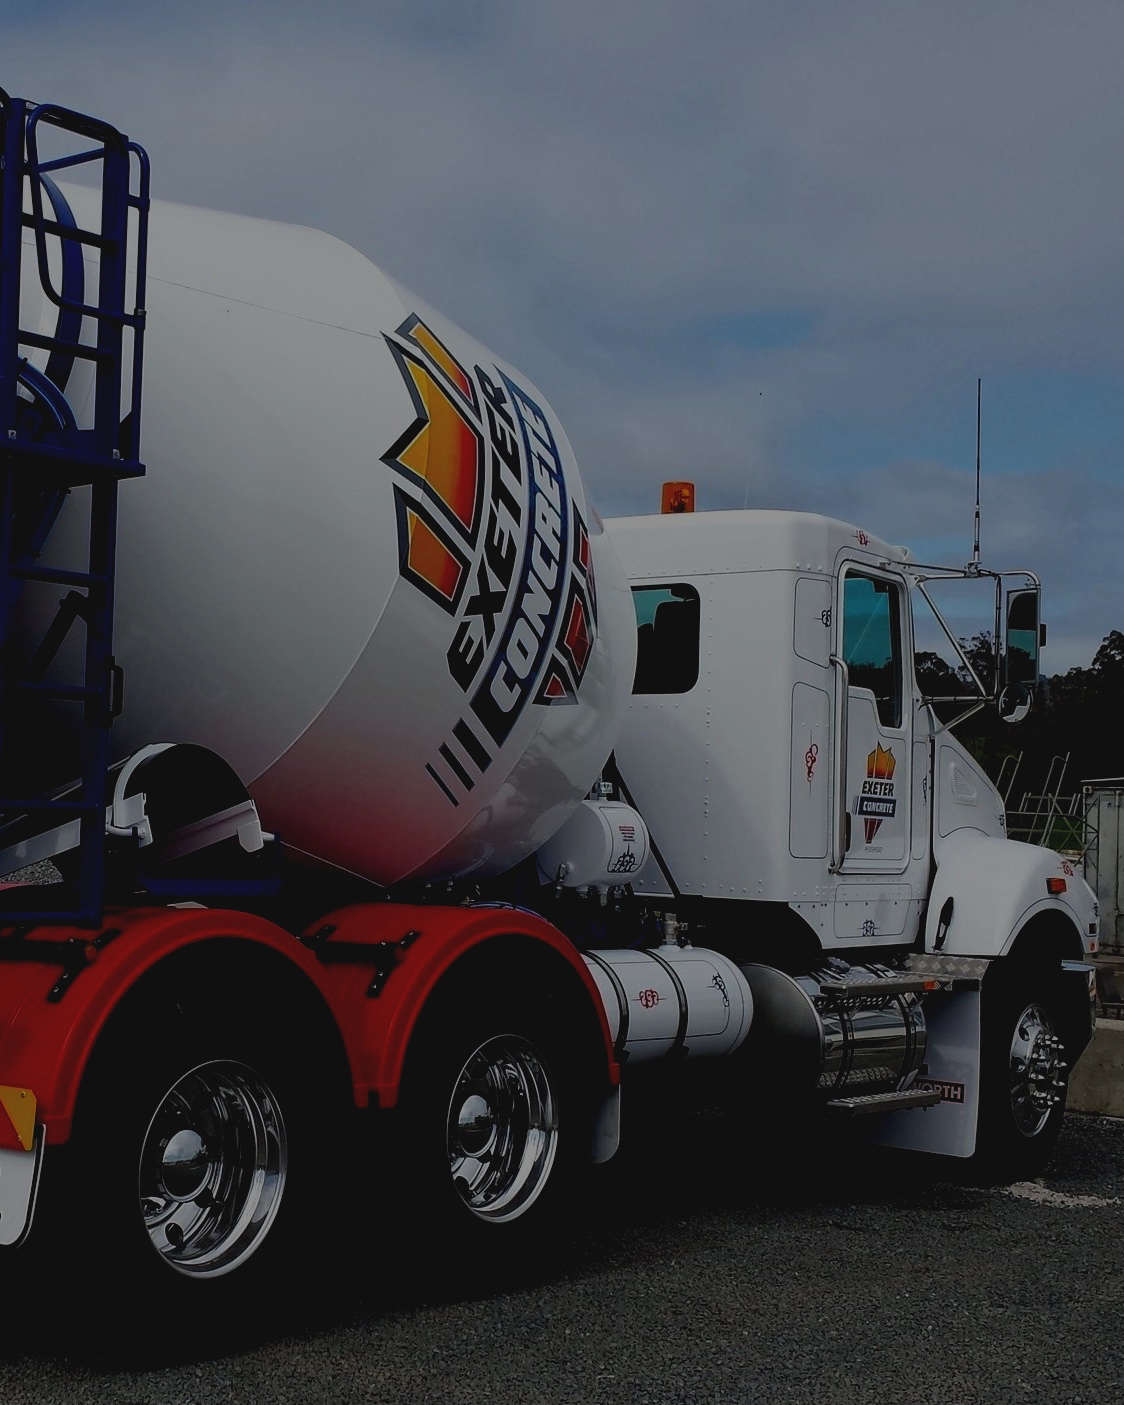 Concrete - We provide concreting services in the Tamar Valley and surrounds.Find out more >